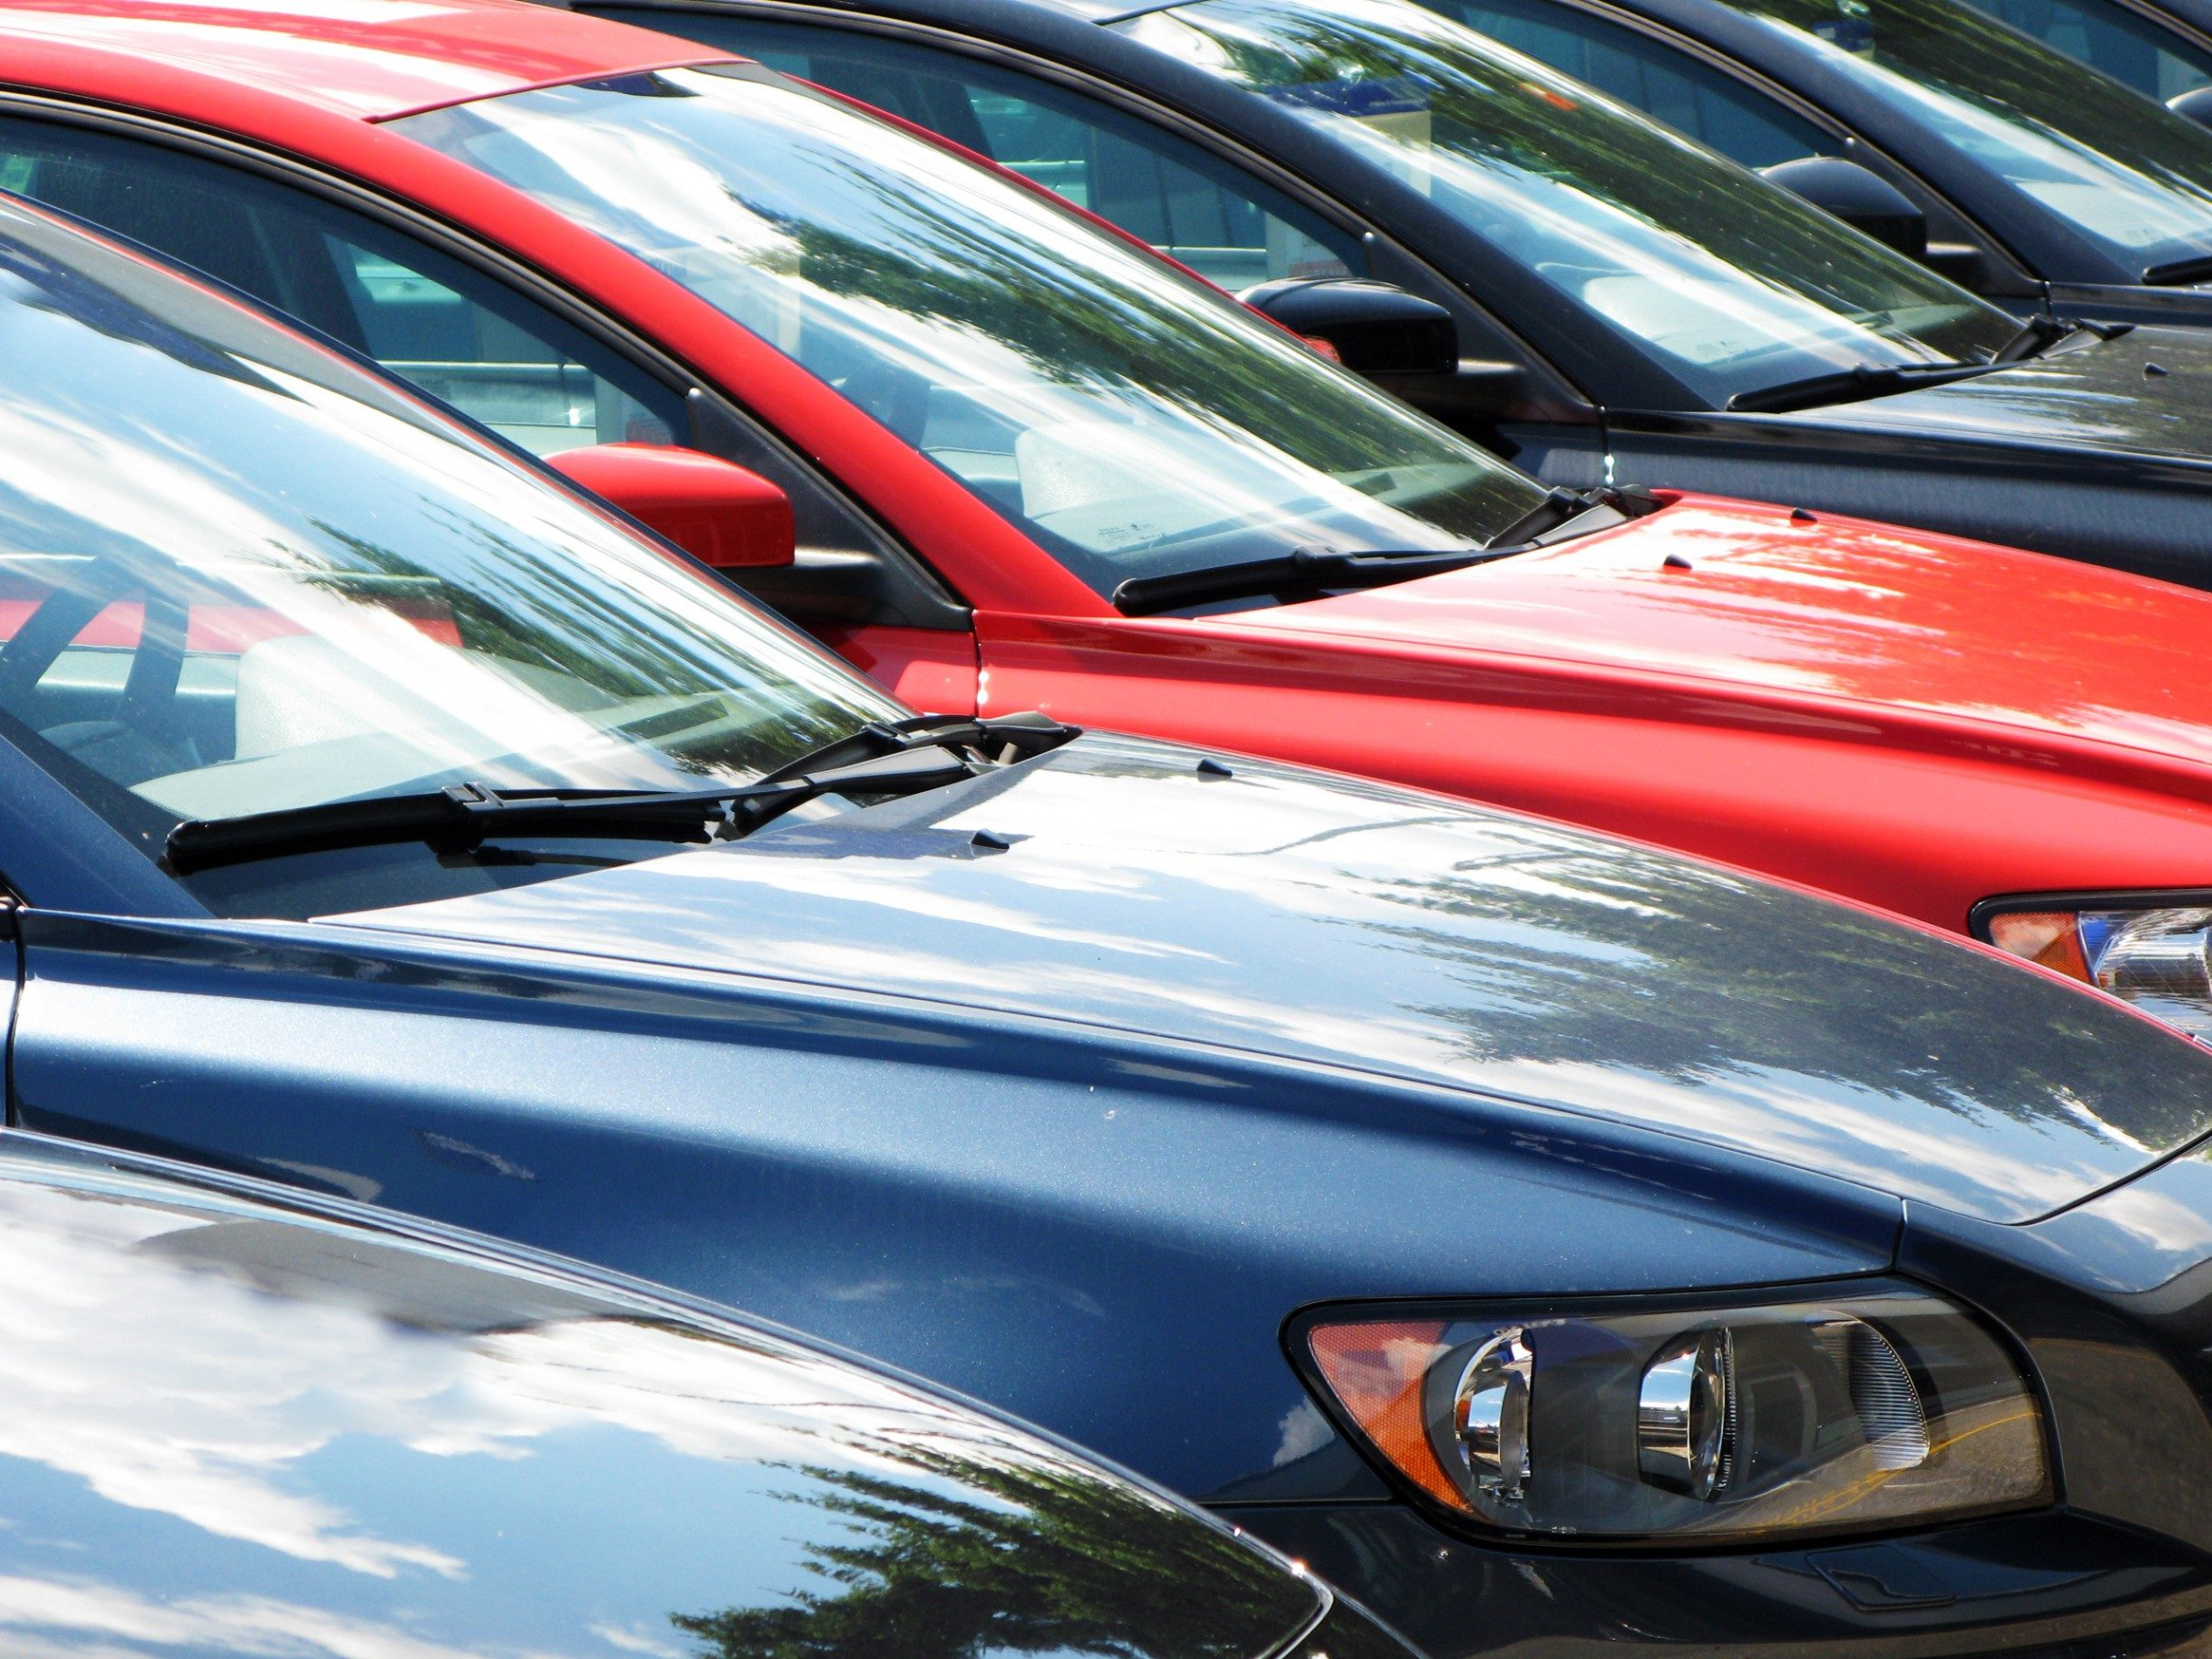 1. Get to Know Local Car Auctions